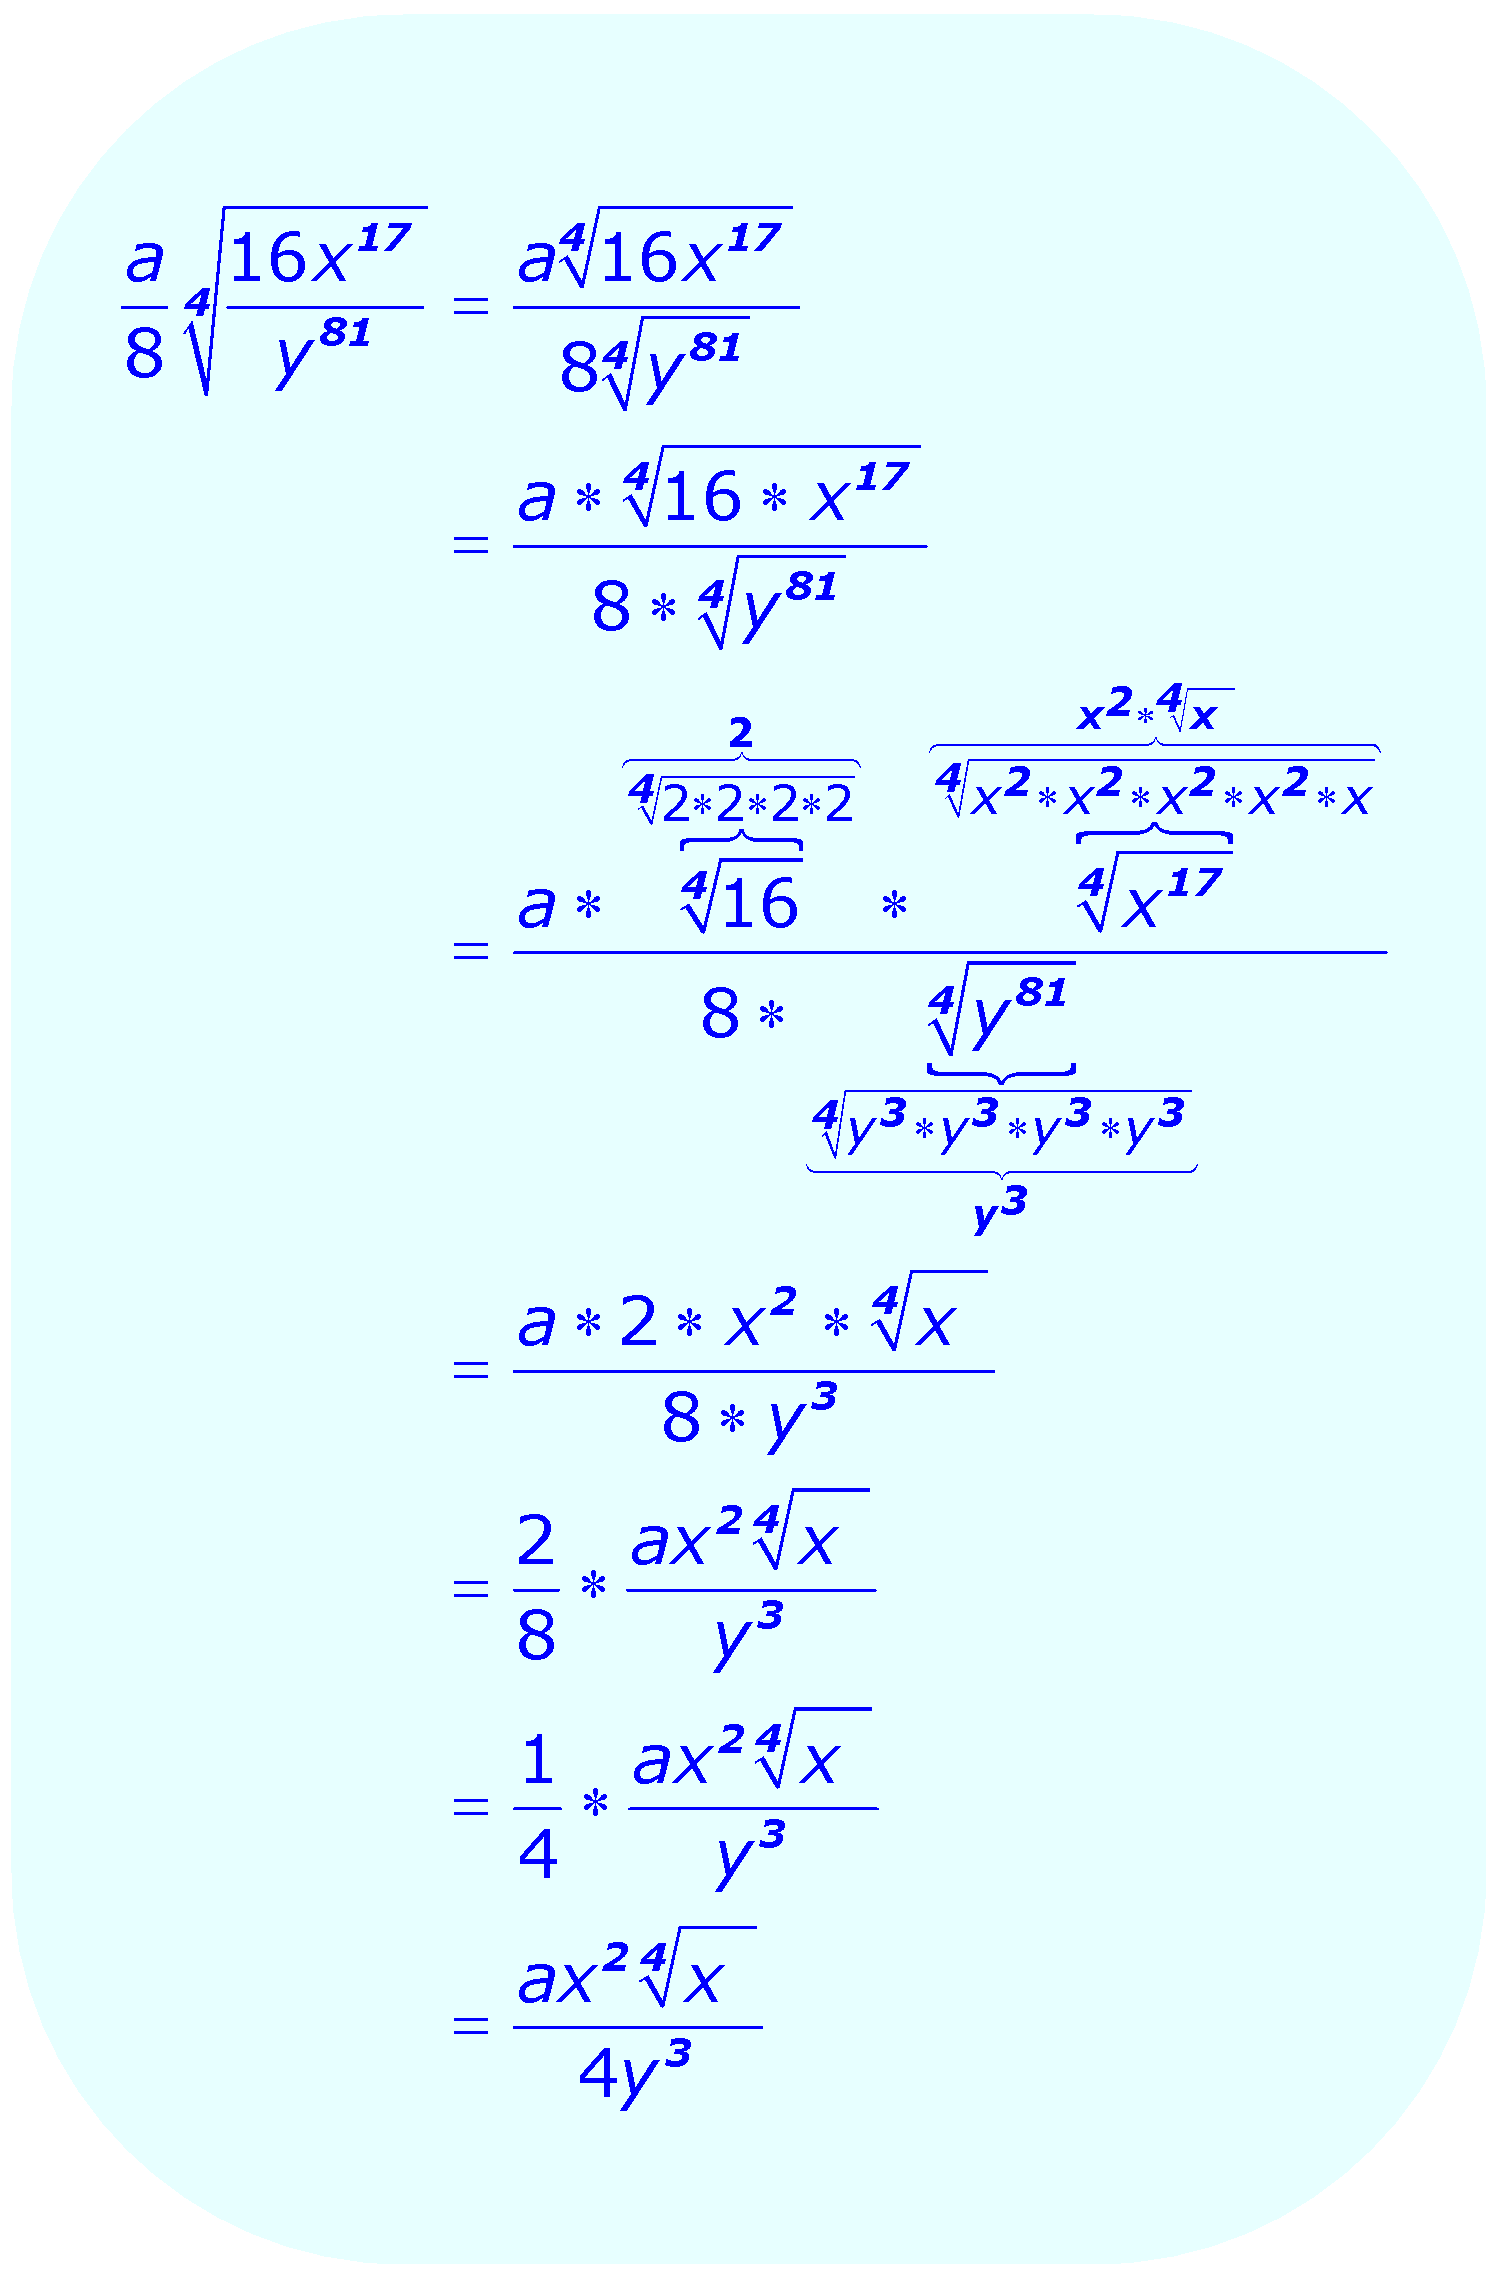 Simplifying Radicals adding and subtracting radicals – Dividing Radicals Worksheet